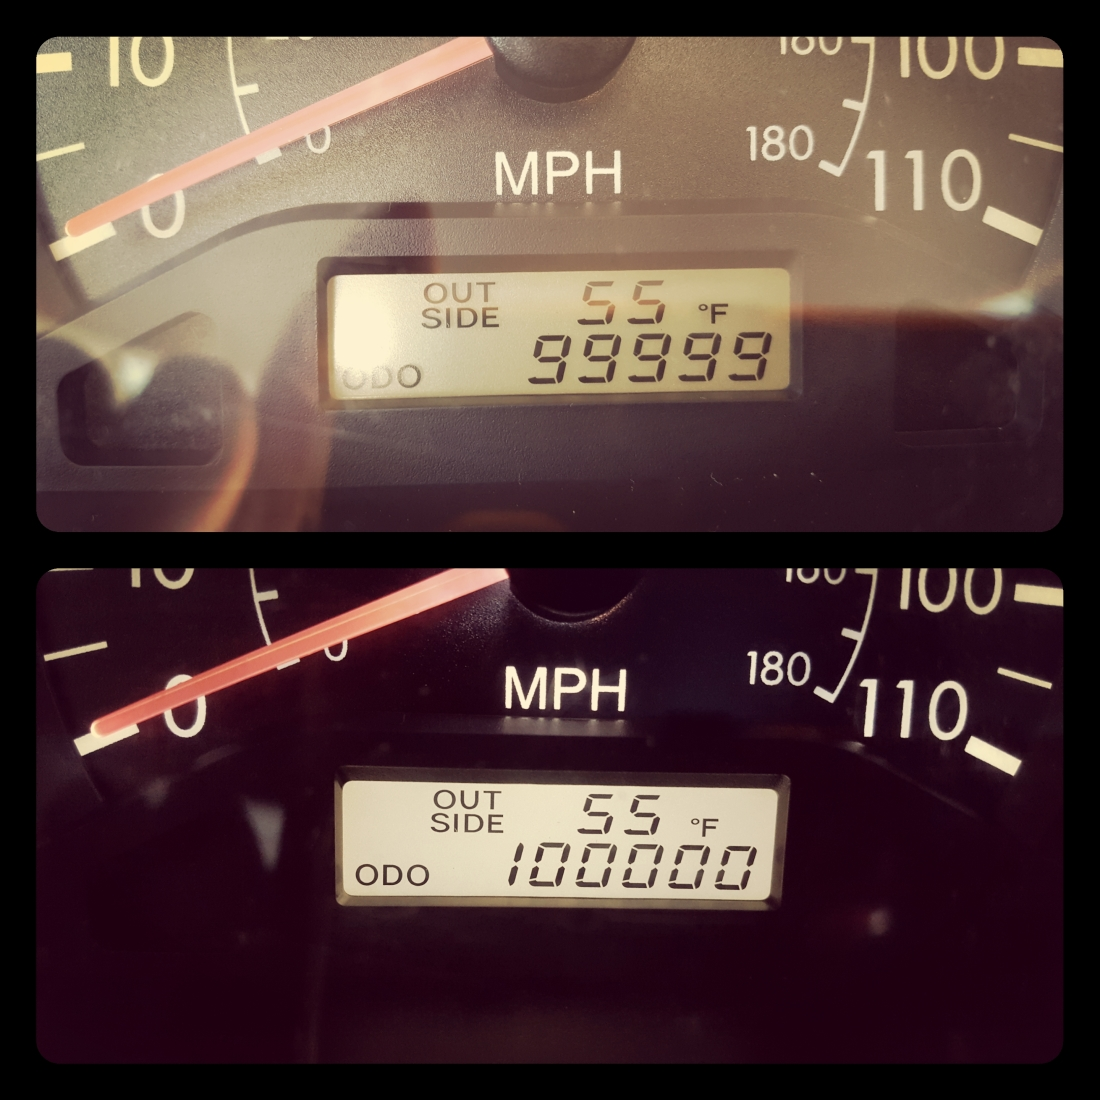 Odometer reading 99999 and Odometer reading 100000